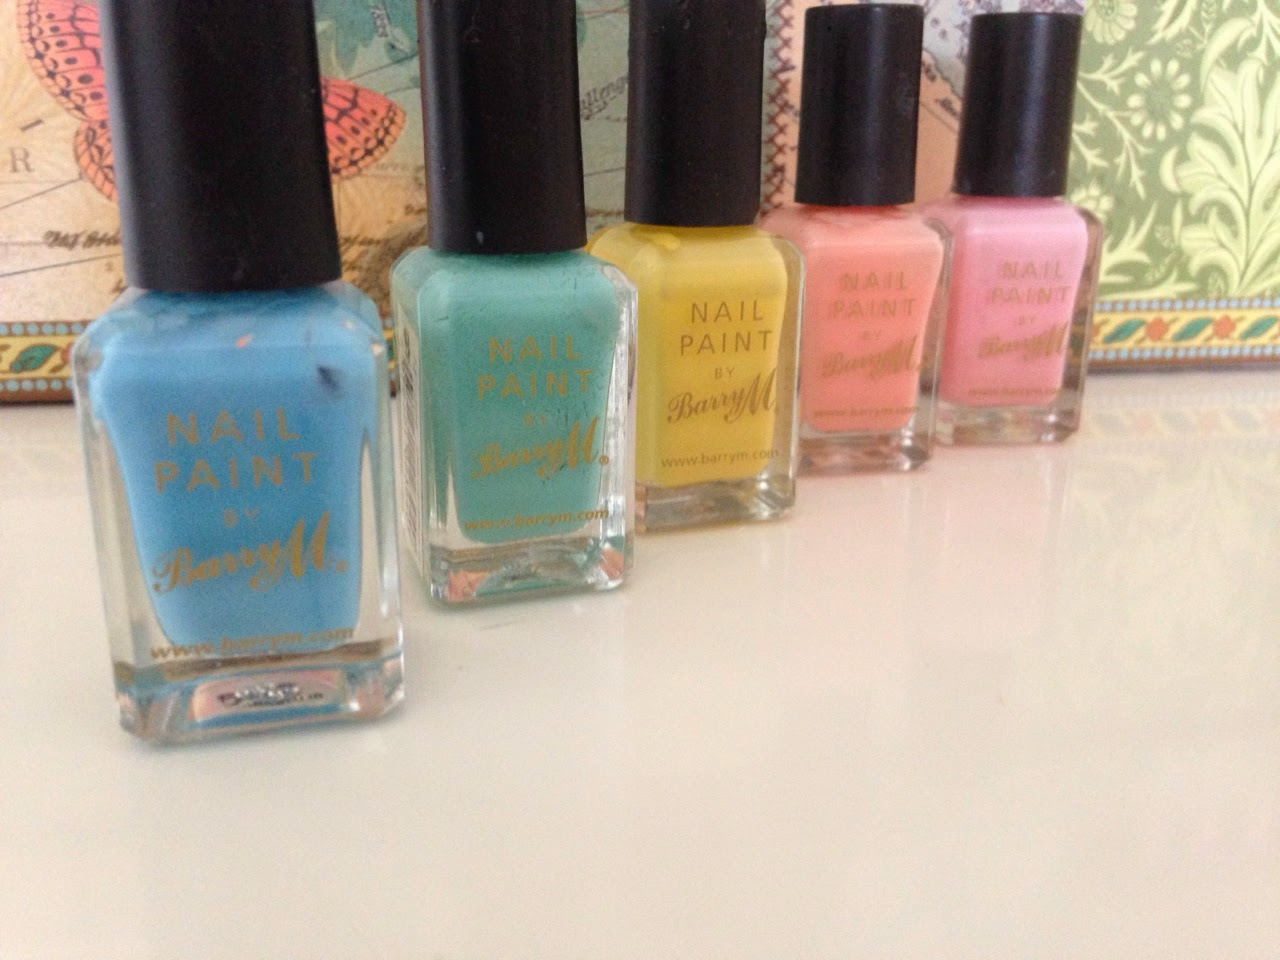 Barry M Nail Polishes in Pastel Shades